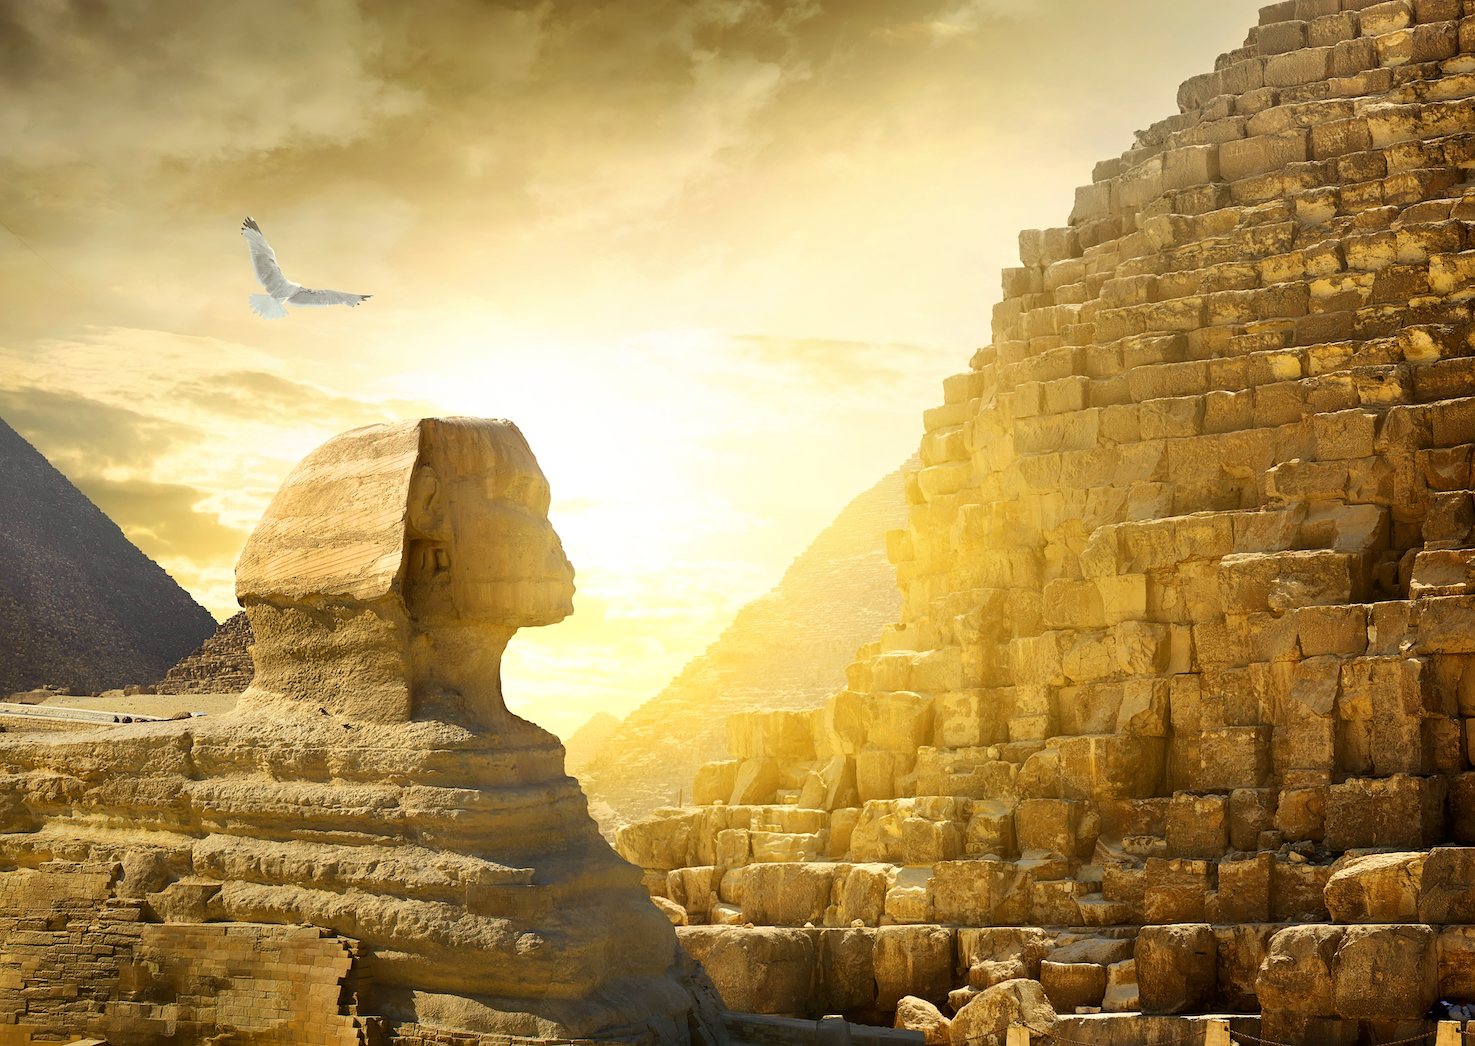 Researchers reconstructed climate change in ancient Egypt and discovered that it had a profound effect on economic and political stability.